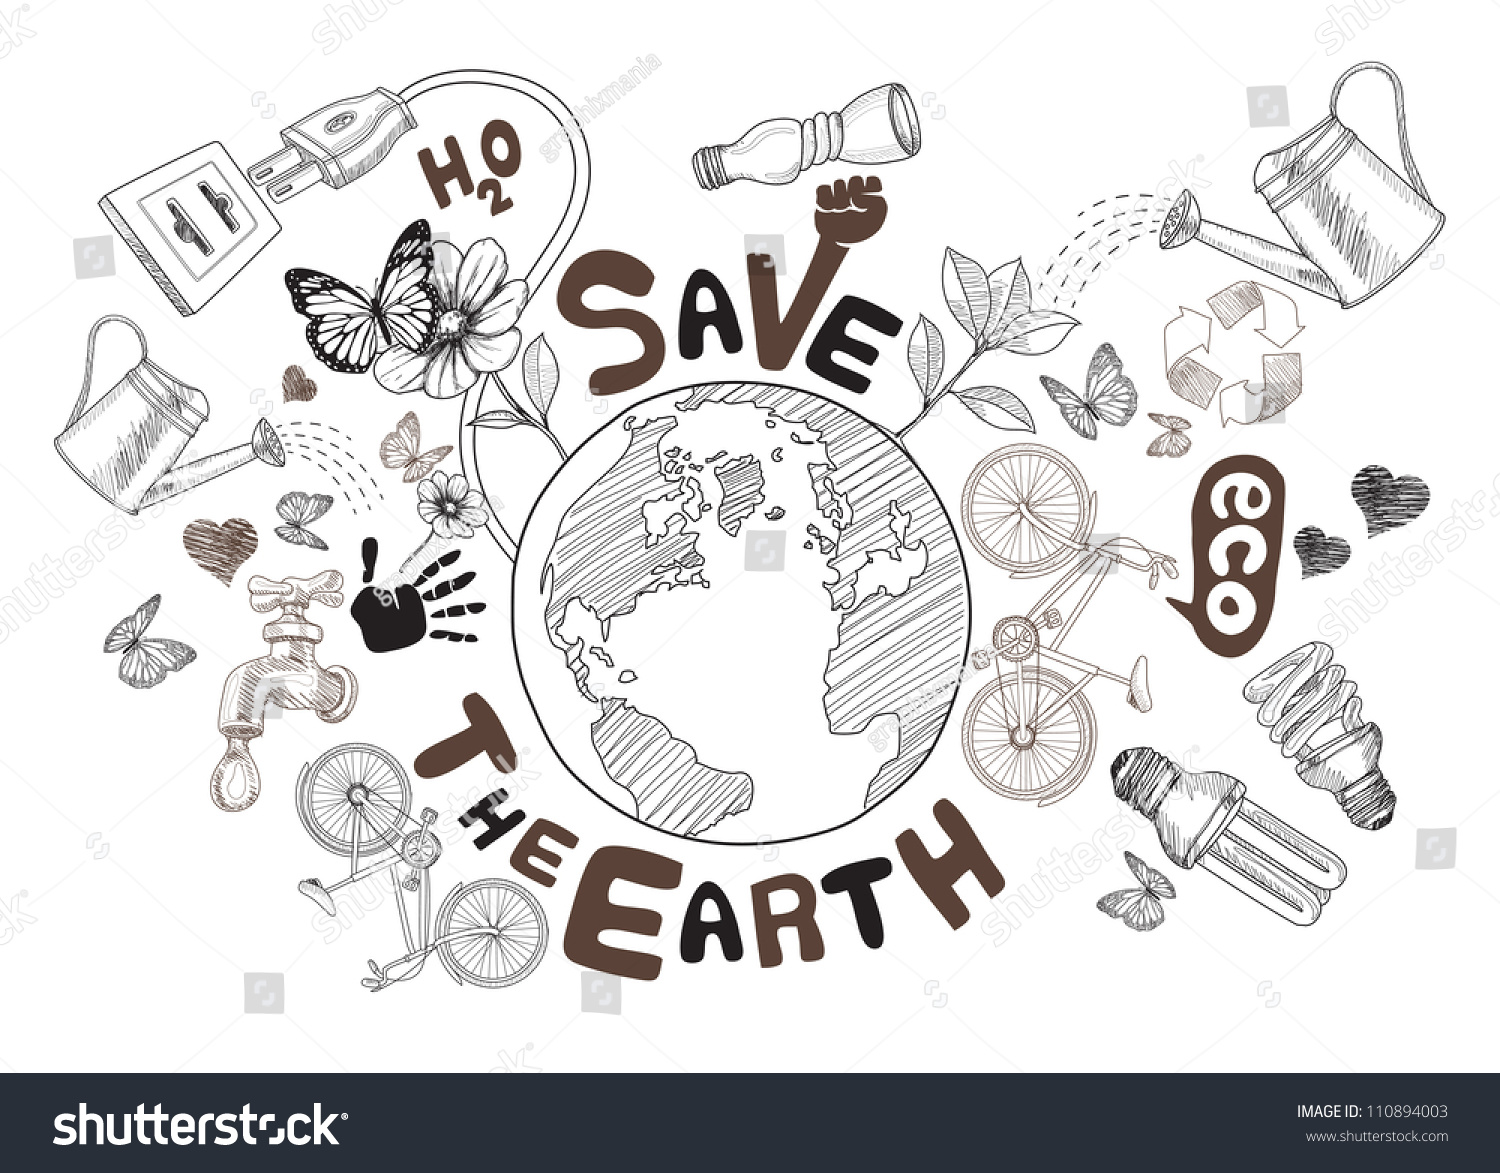 Easy Drawing Of Save Nature Earth Drawing In 60s How To Draw Earth